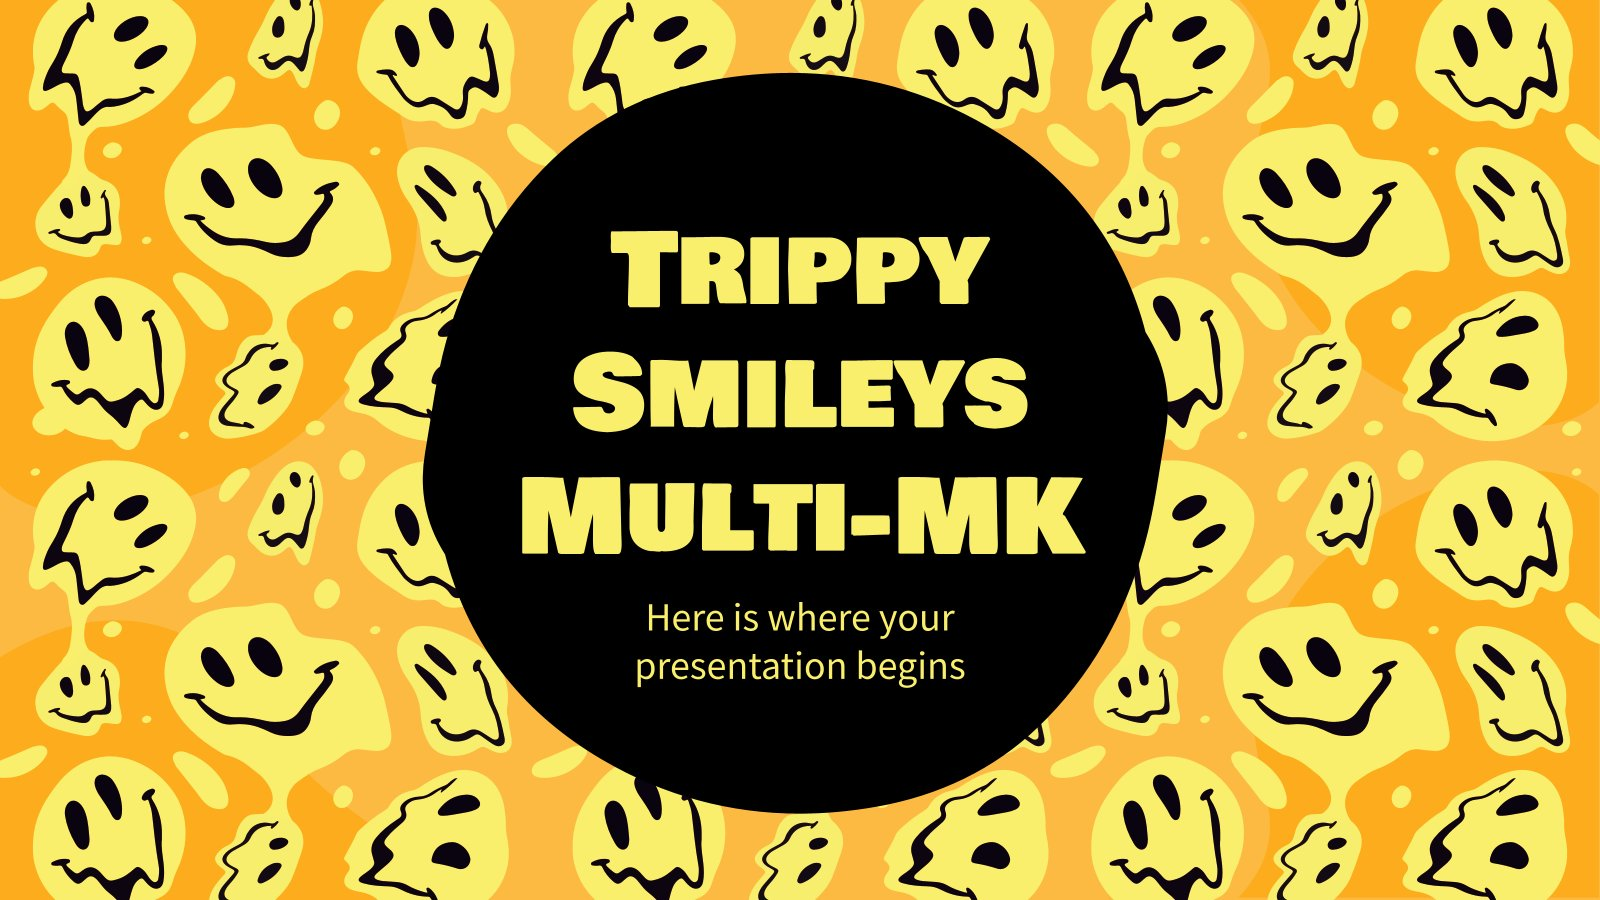 Trippy Smileys Multi-MK presentation template